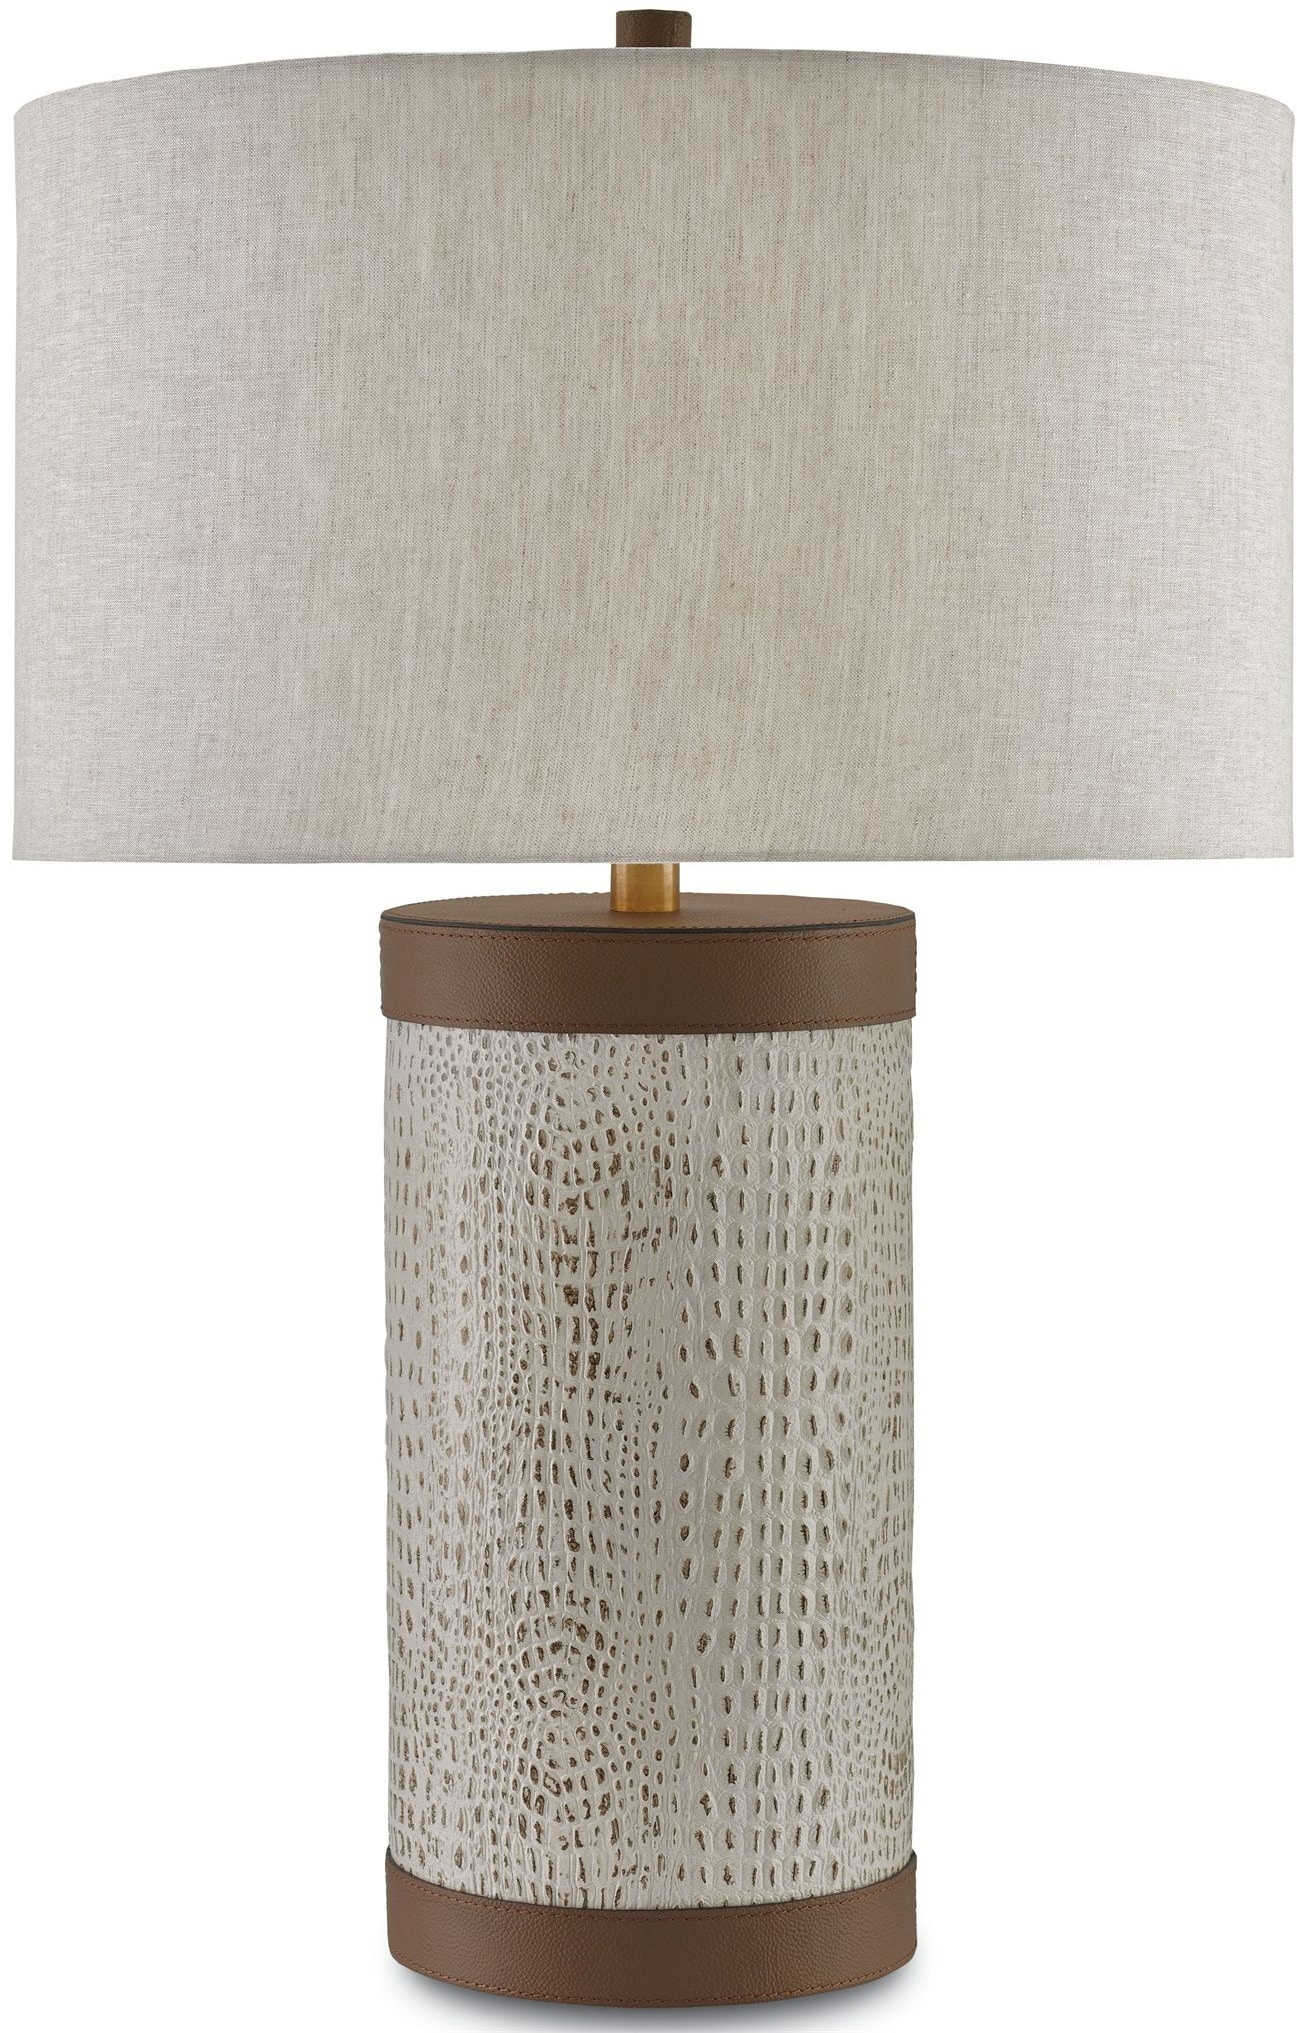 Currey and company baptiste table lamp 6000 0038